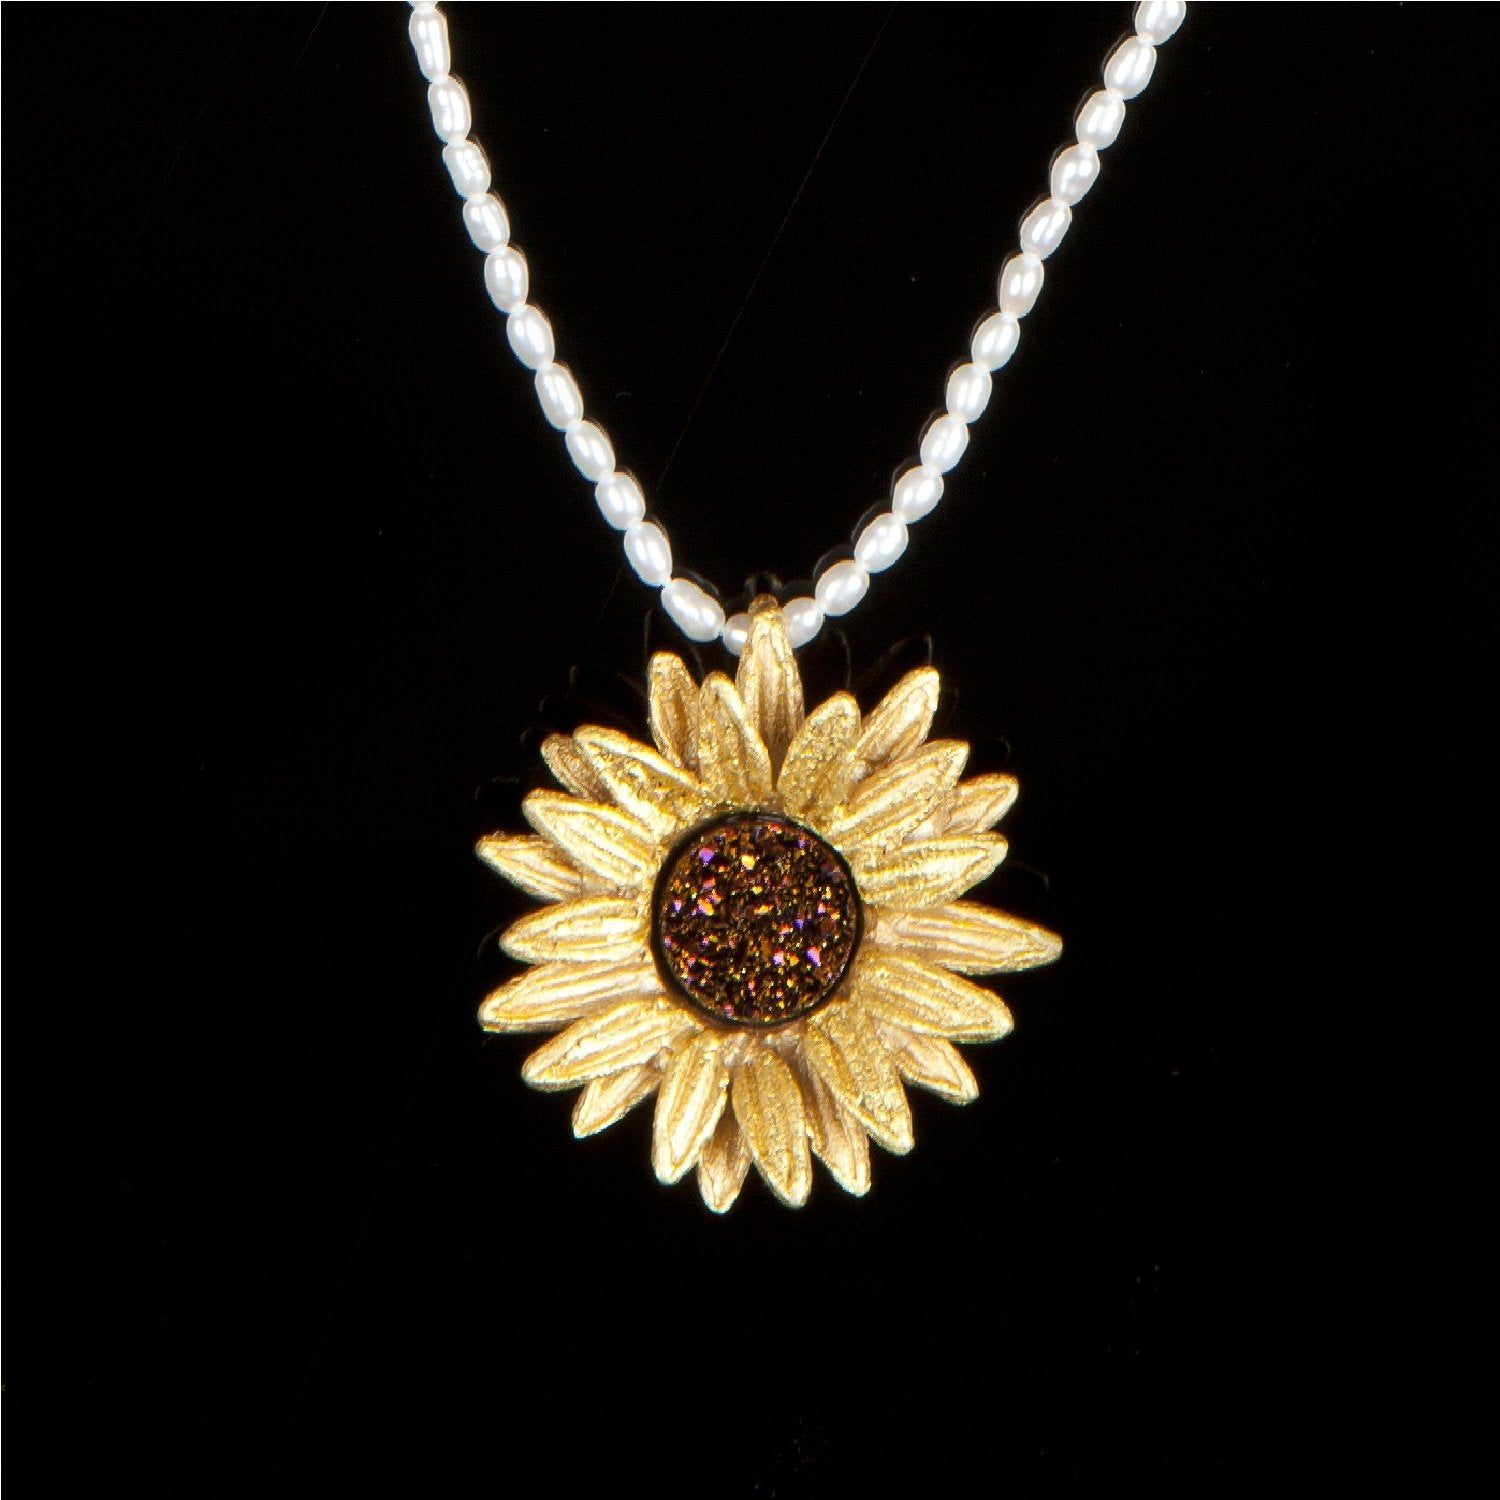 Sunflower Pendant White Pearls